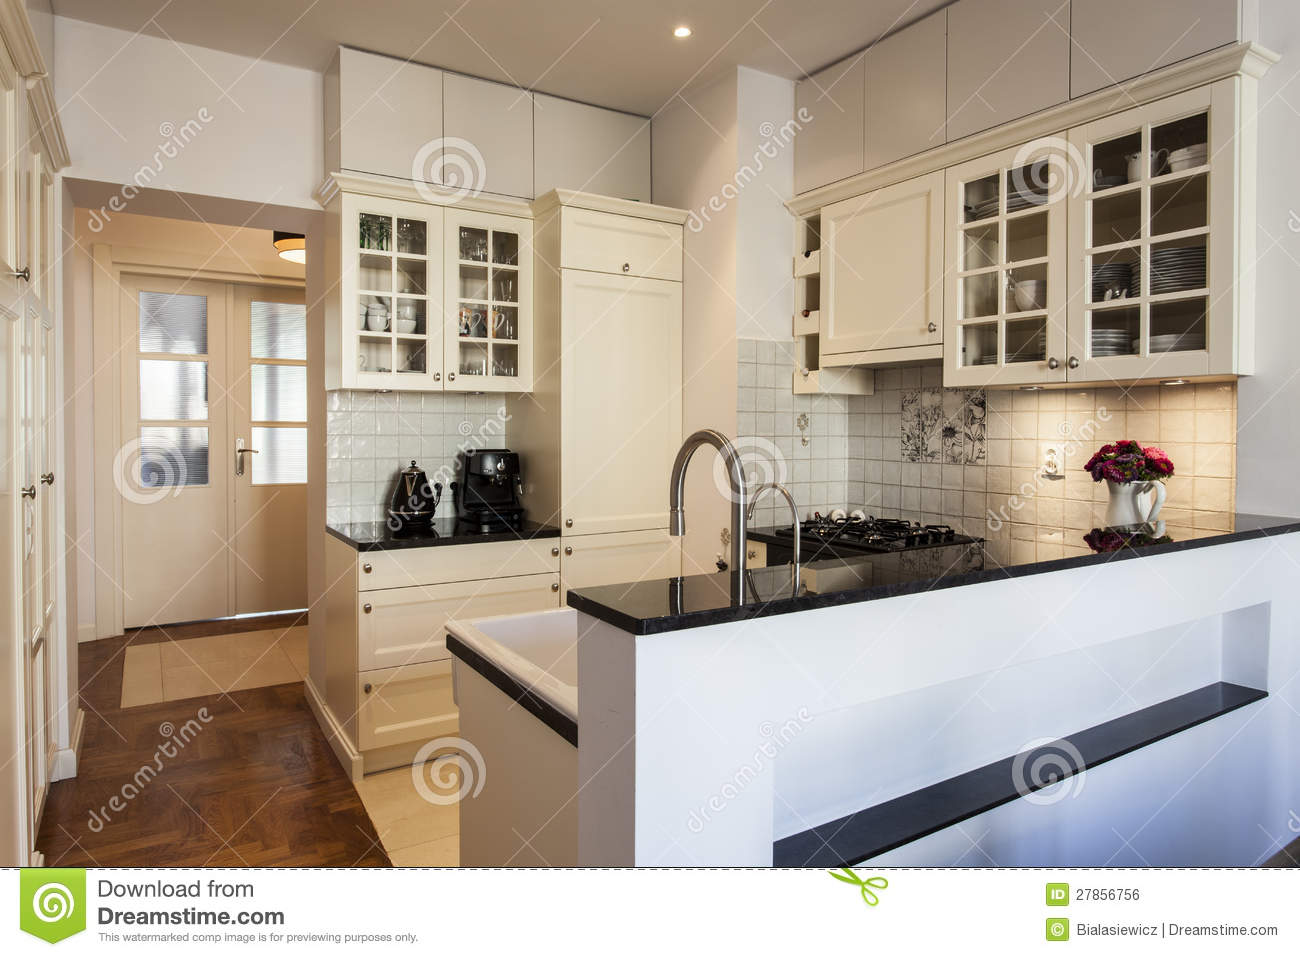 Kitchen In White And Ecru Royalty Free Stock Image  Image   -> Kuchnia Ecru Jaki Blat